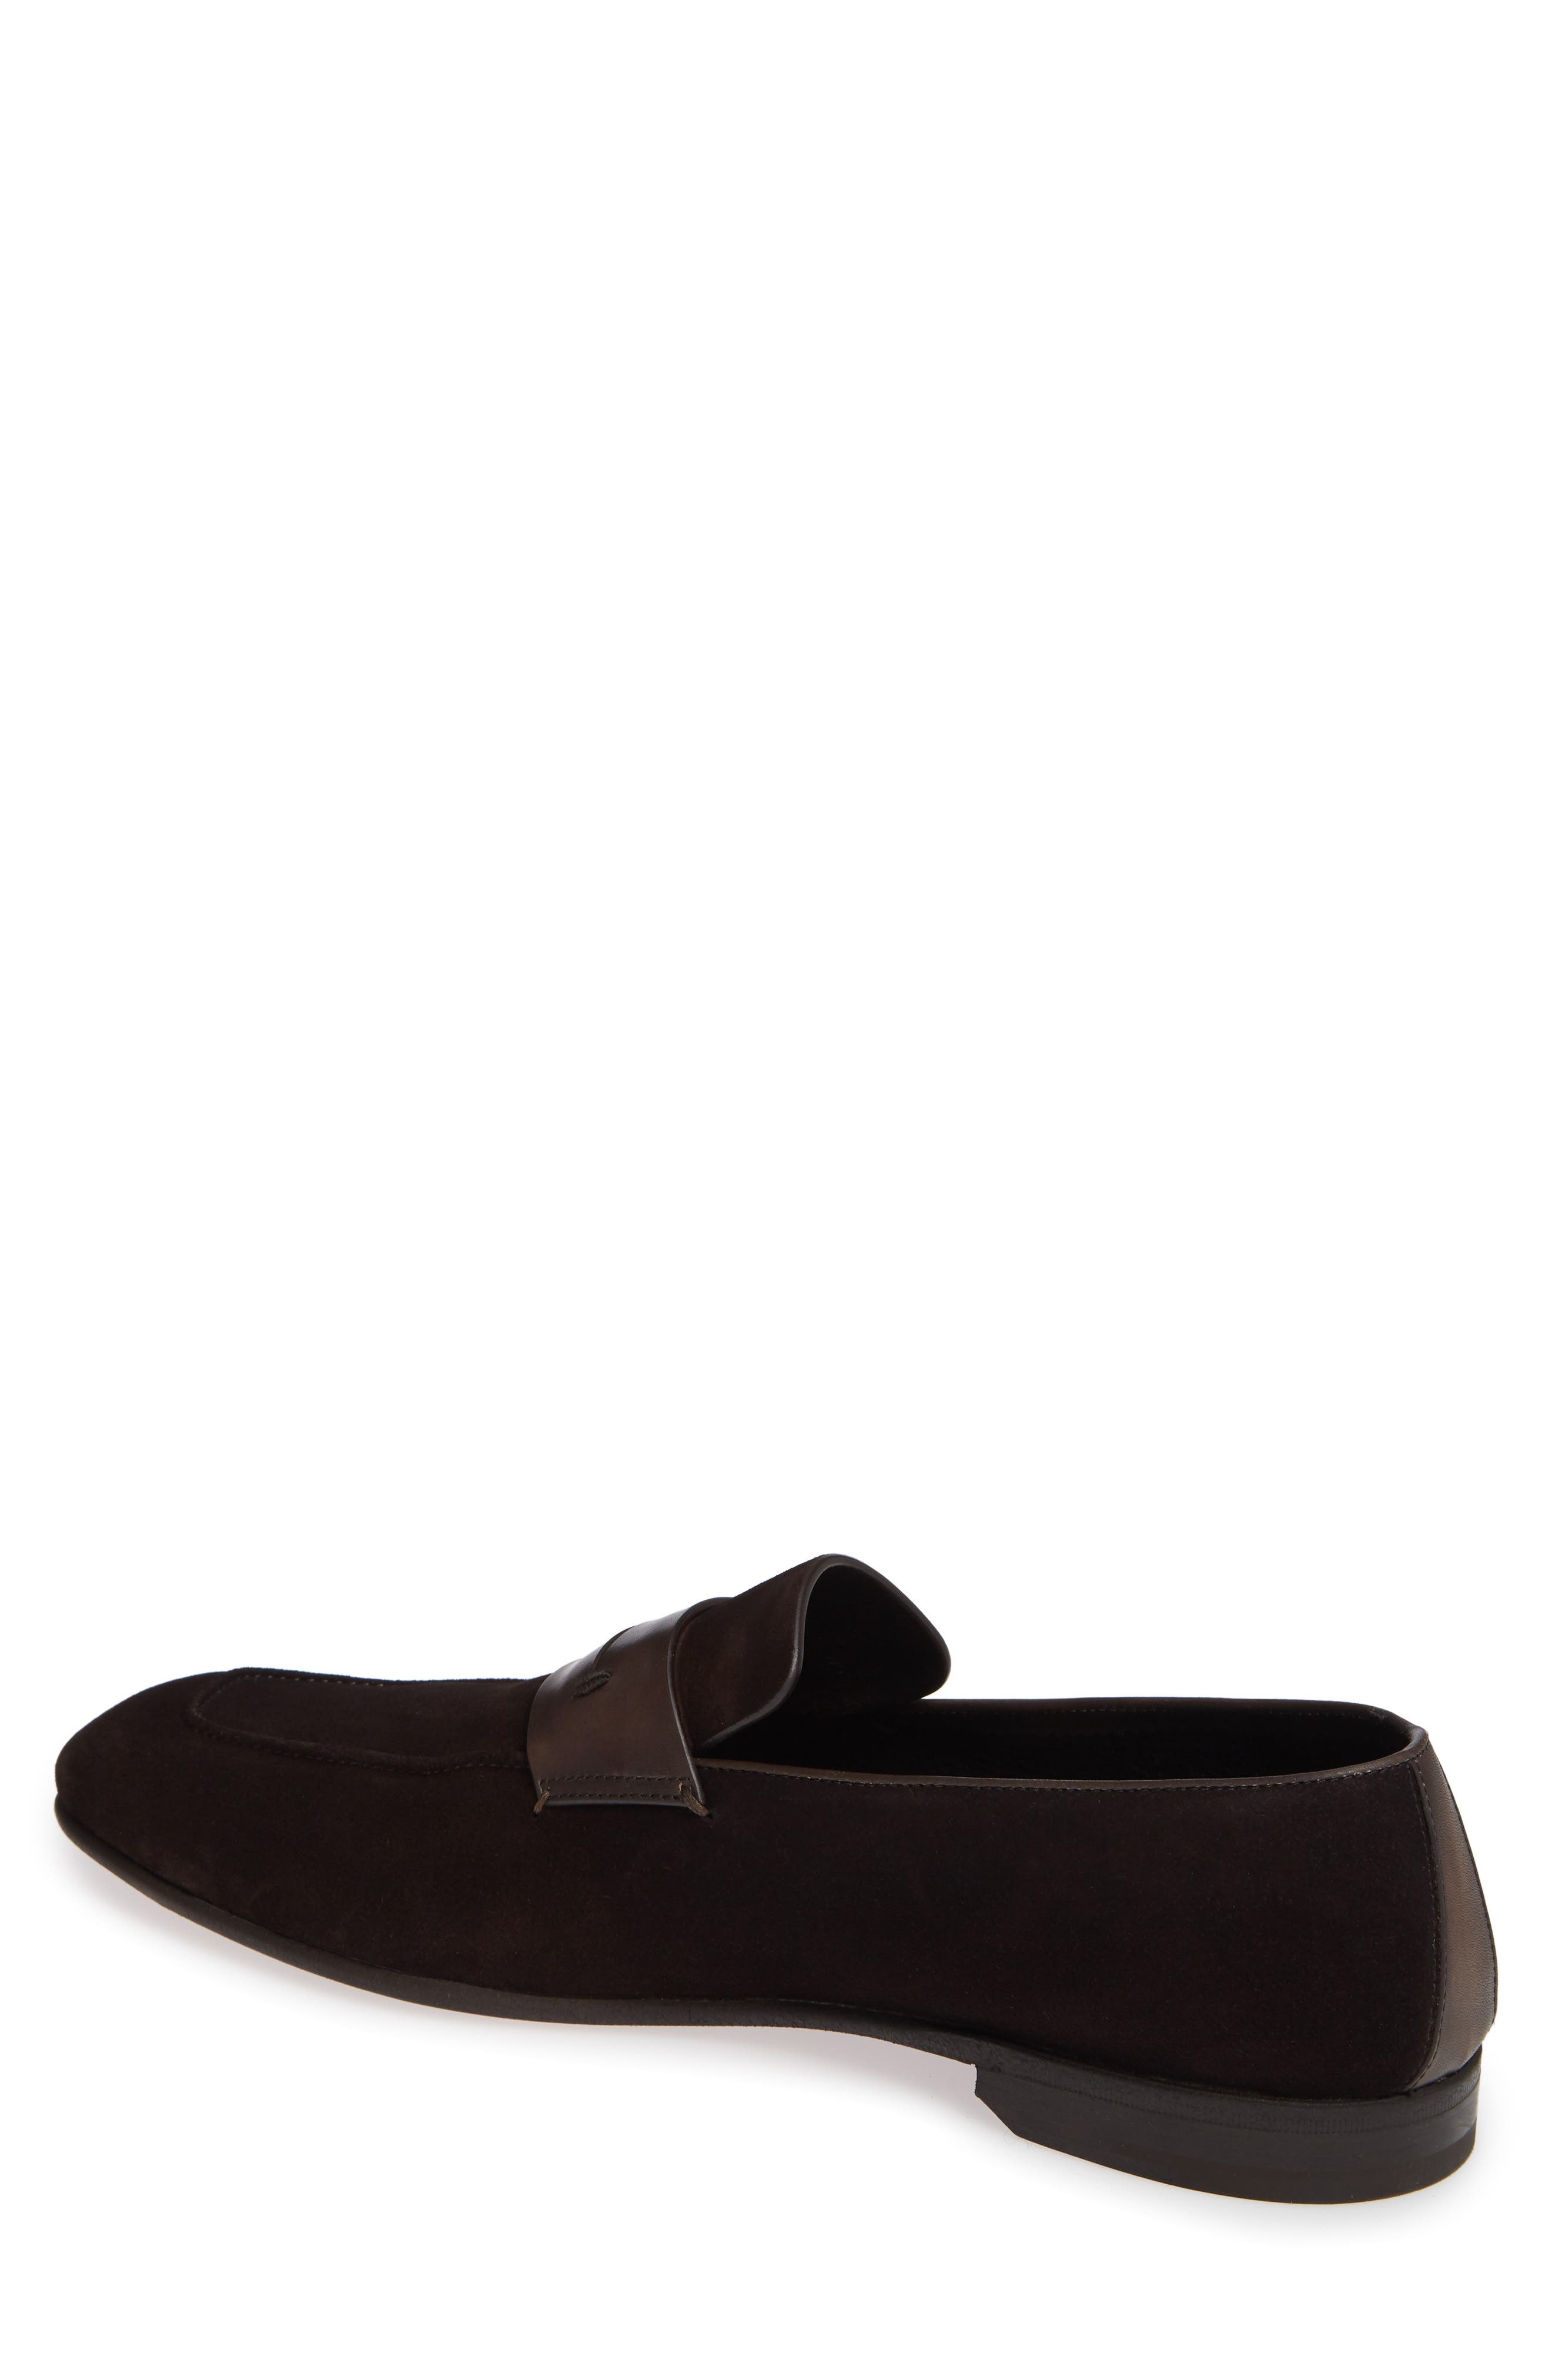 Penny Loafer,                             Alternate thumbnail 2, color,                             BROWN